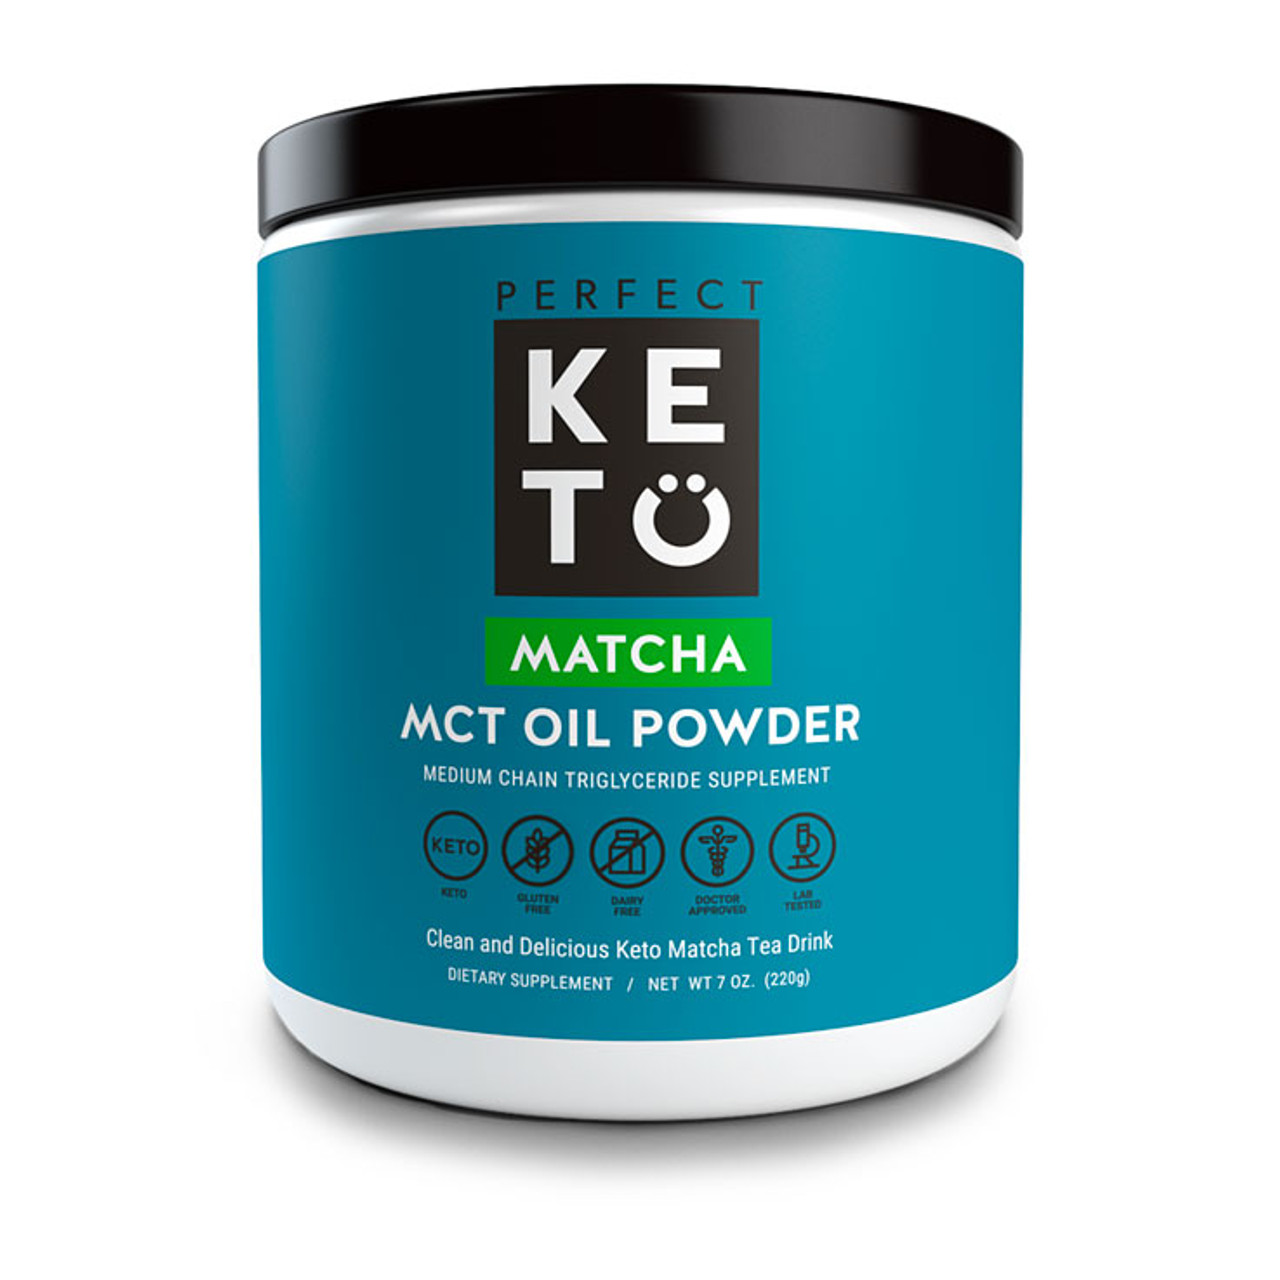 Try Healthy Matcha Green Tea With Low-Carb MCT Oil Powder